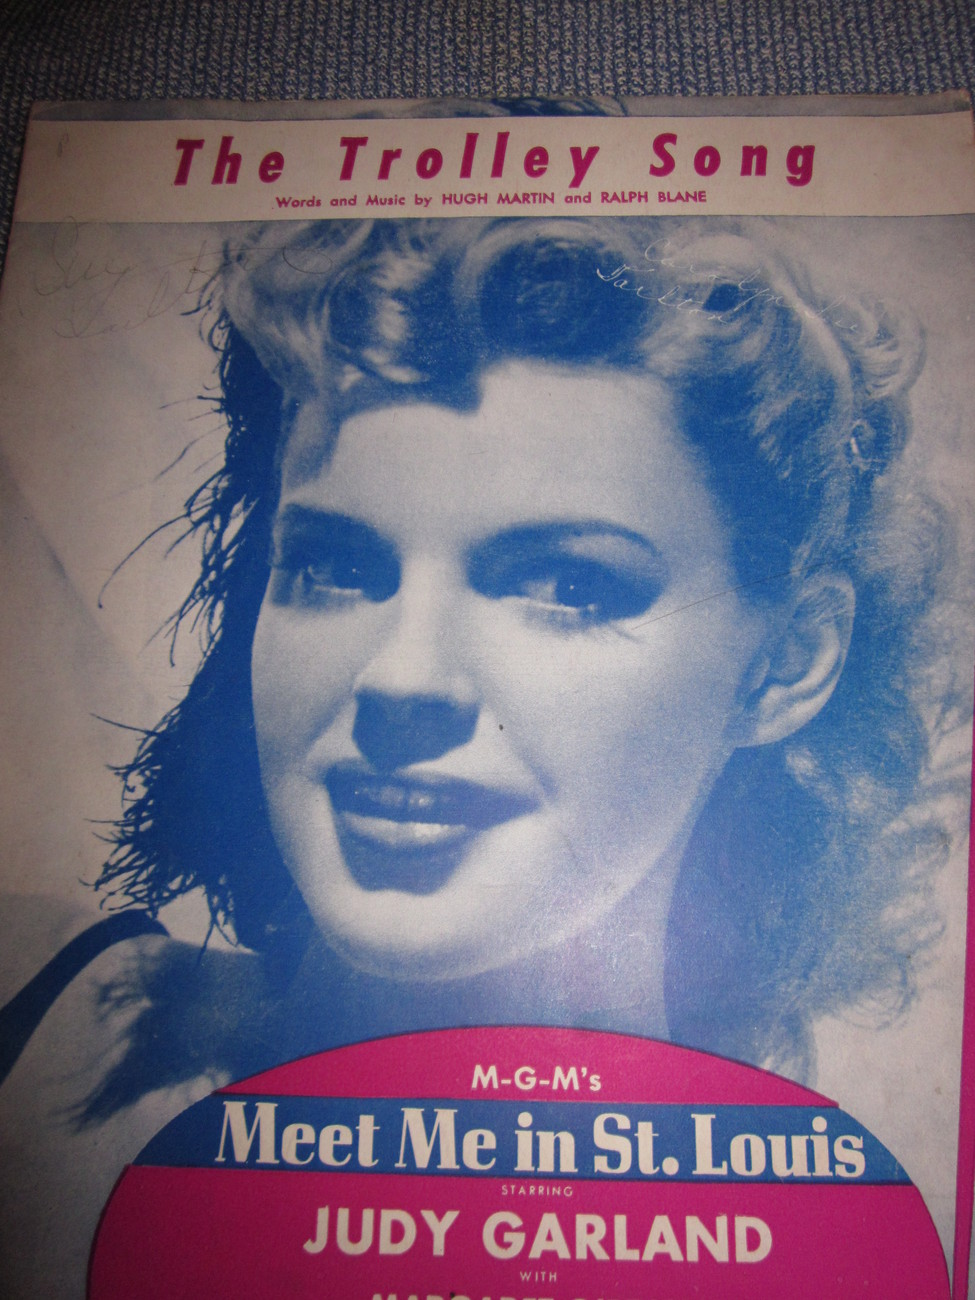 Vintage Sheet Music The Trolley Song - Judy Garland 1944